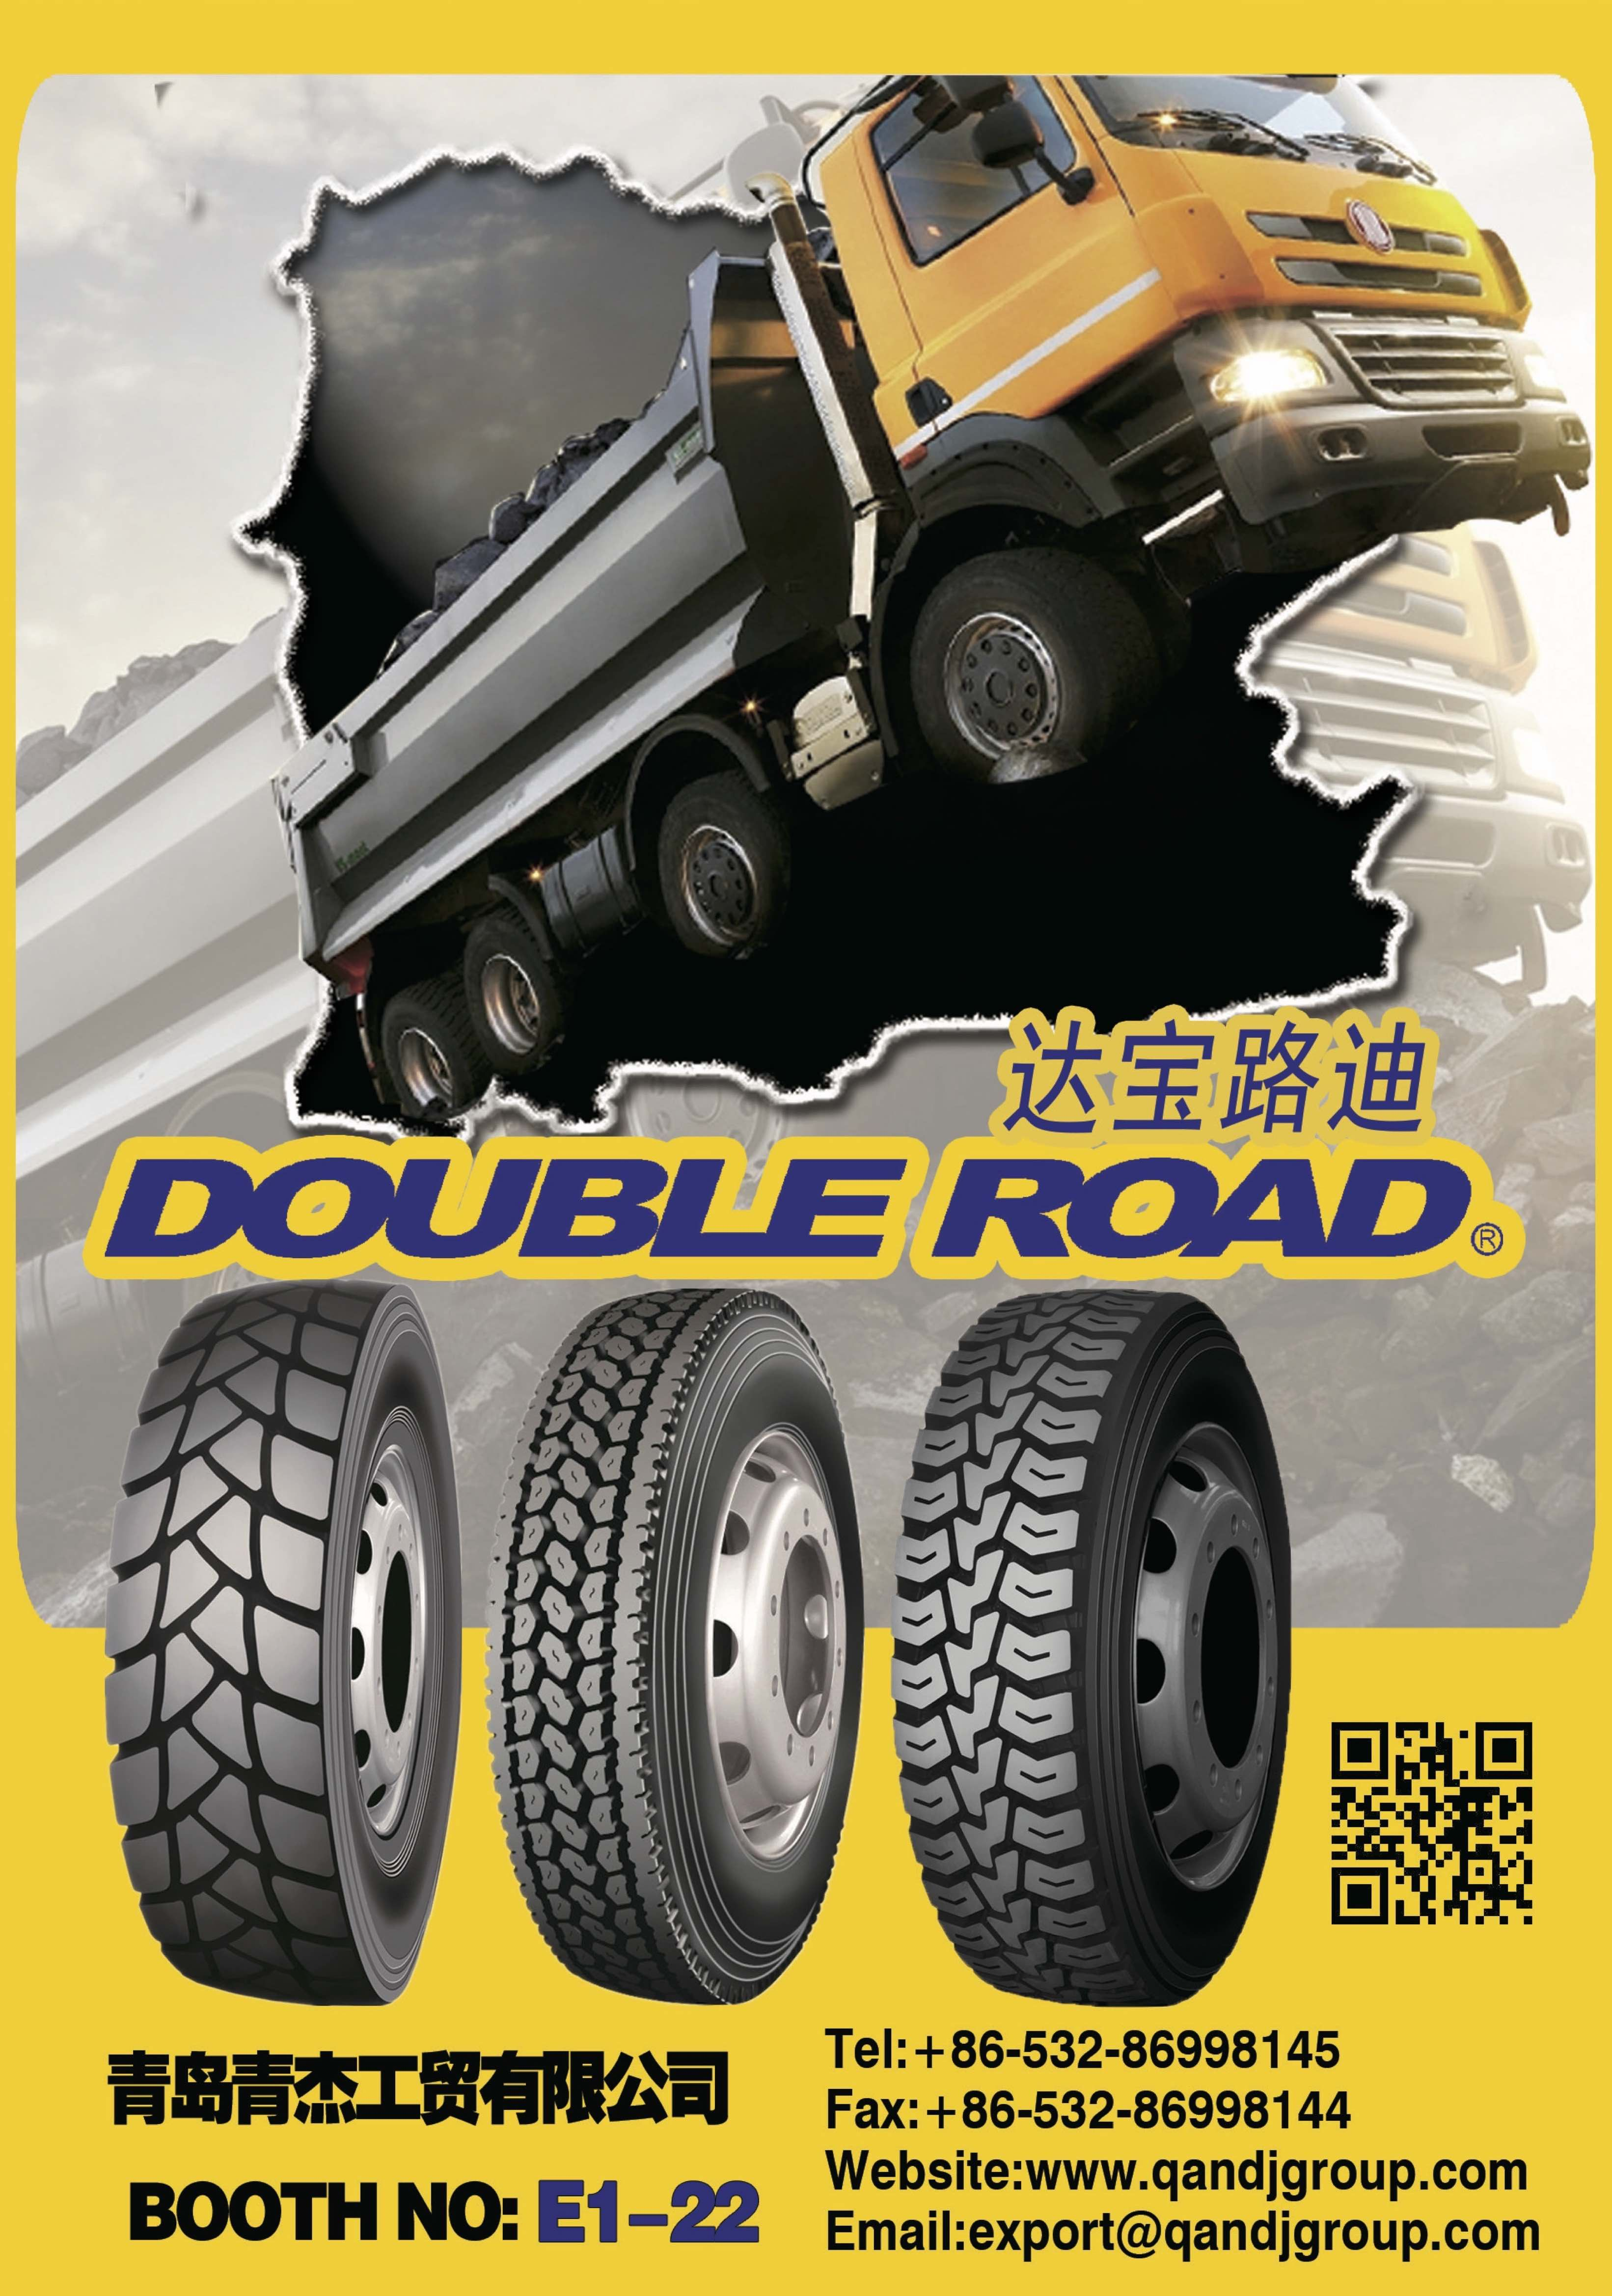 Tires Near Me Open Now >> Double Road Tyre Company From China Grtae China Guangrao Rubber